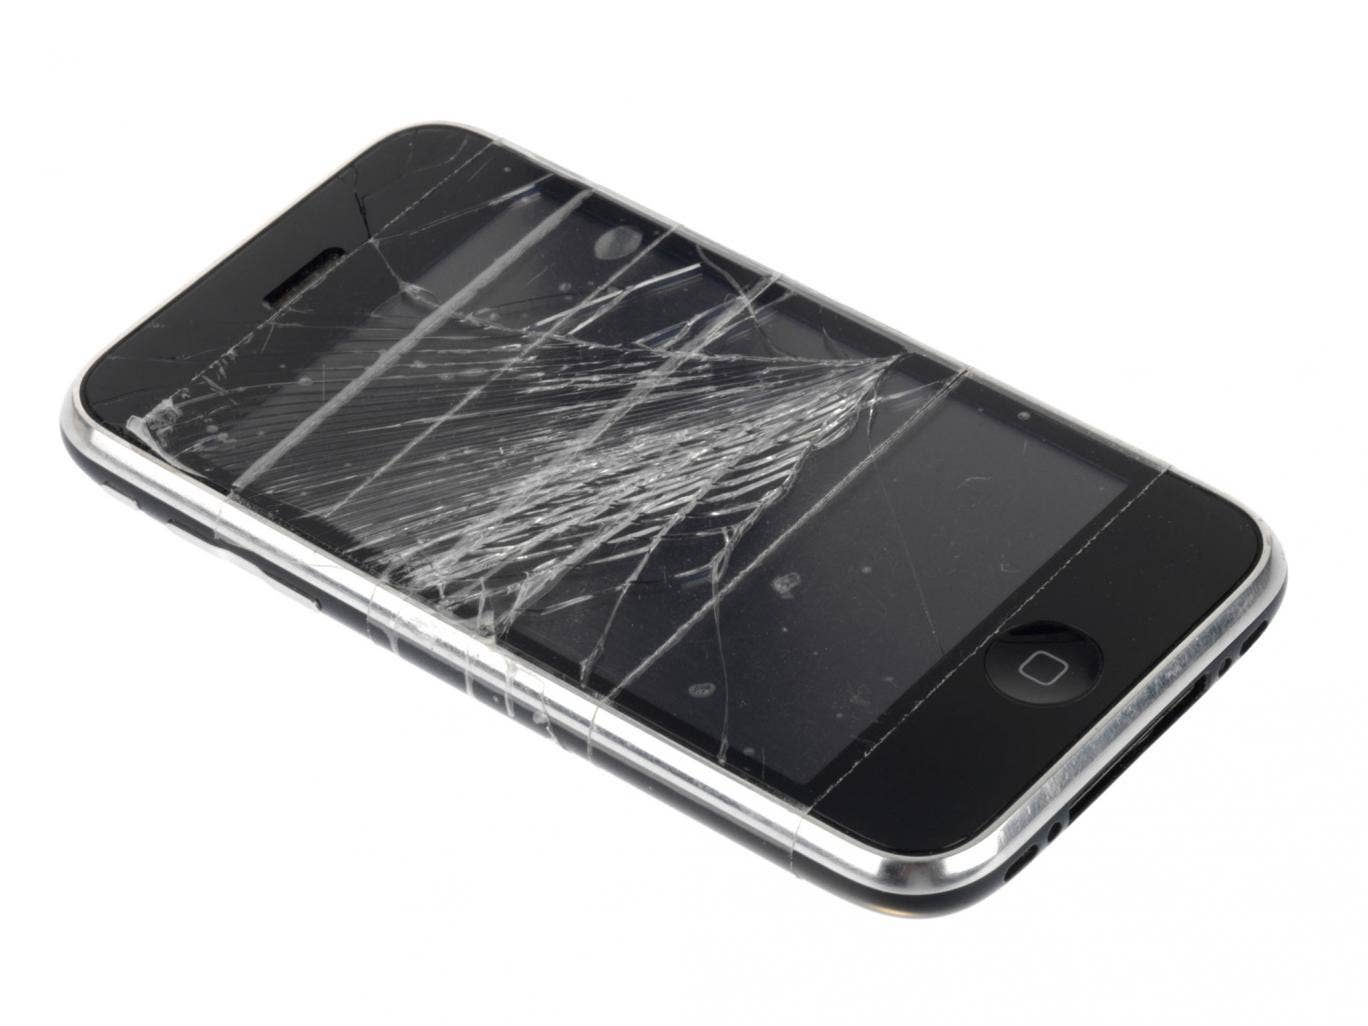 iPhone owners know about shattered screens, so what's the solution?